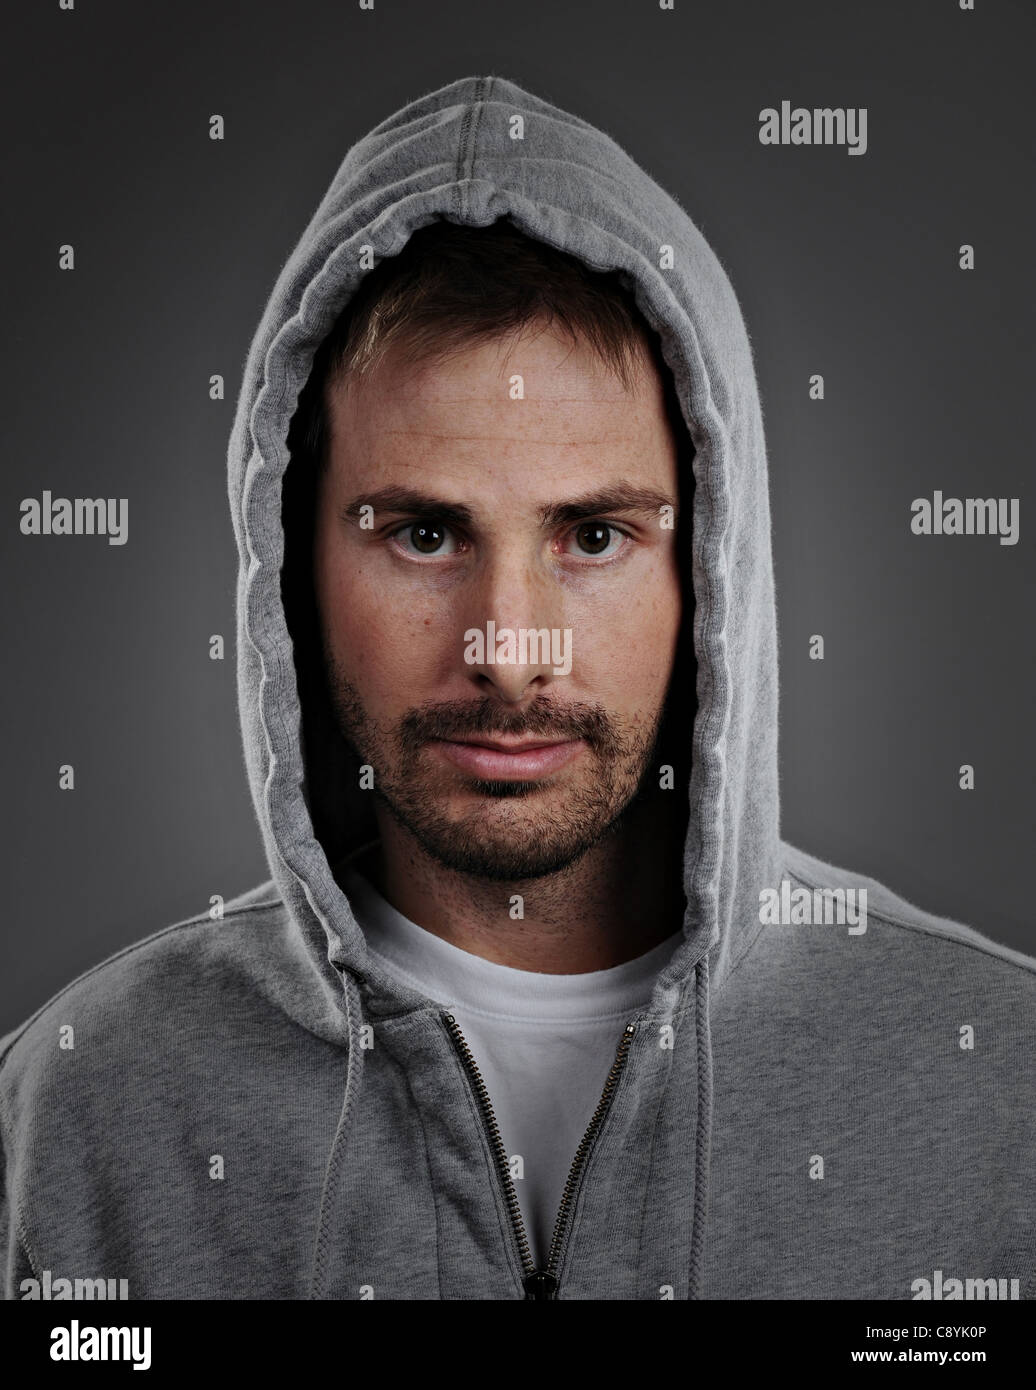 c0fecc2d young man in hoodie Stock Photo: 39945606 - Alamy